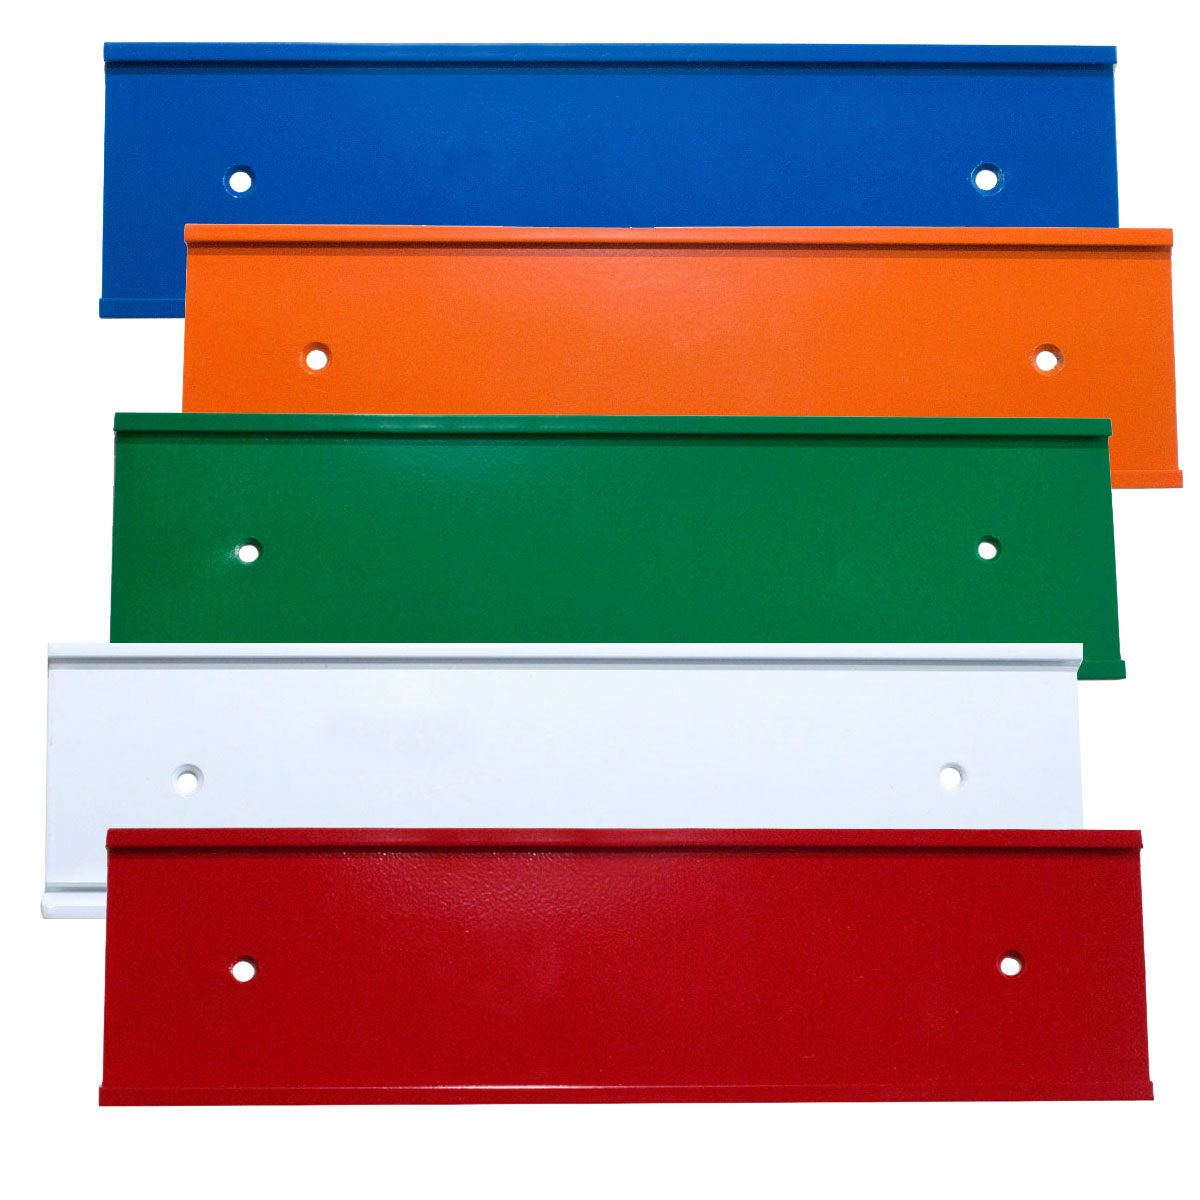 Colored name plate holders for office doors and walls - NapNameplates.com